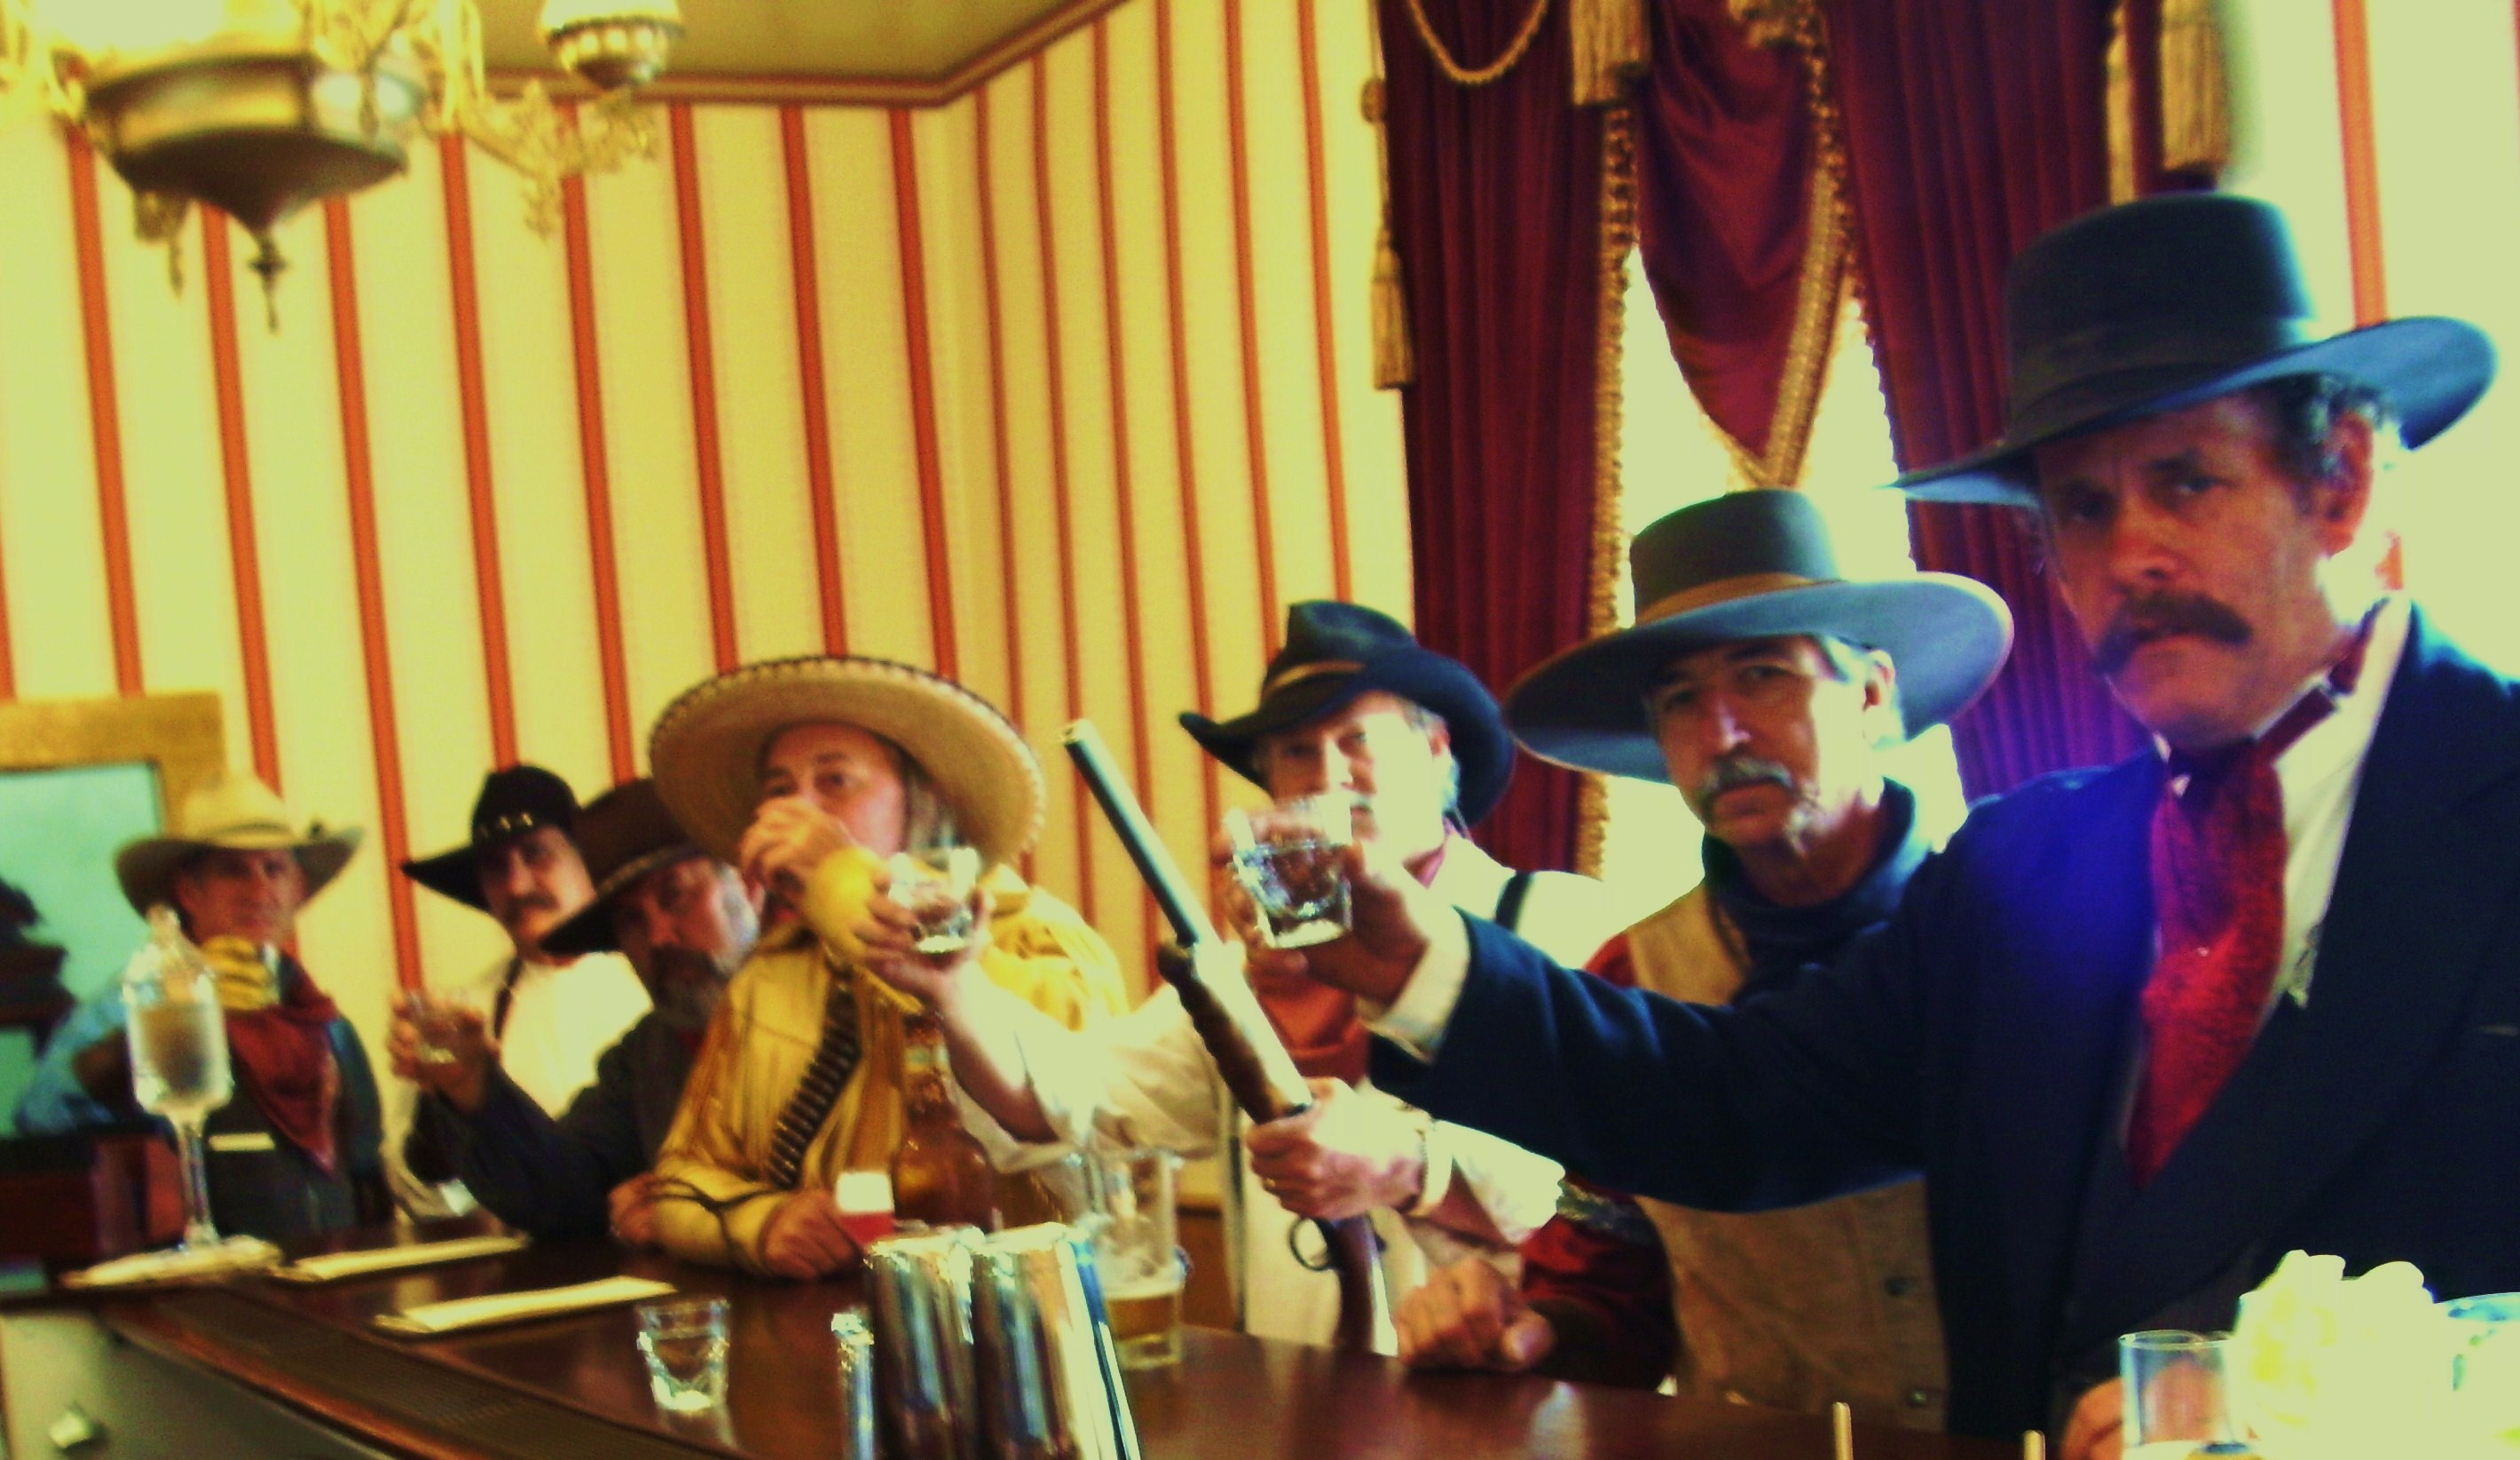 OUTLAWS IN SALOON